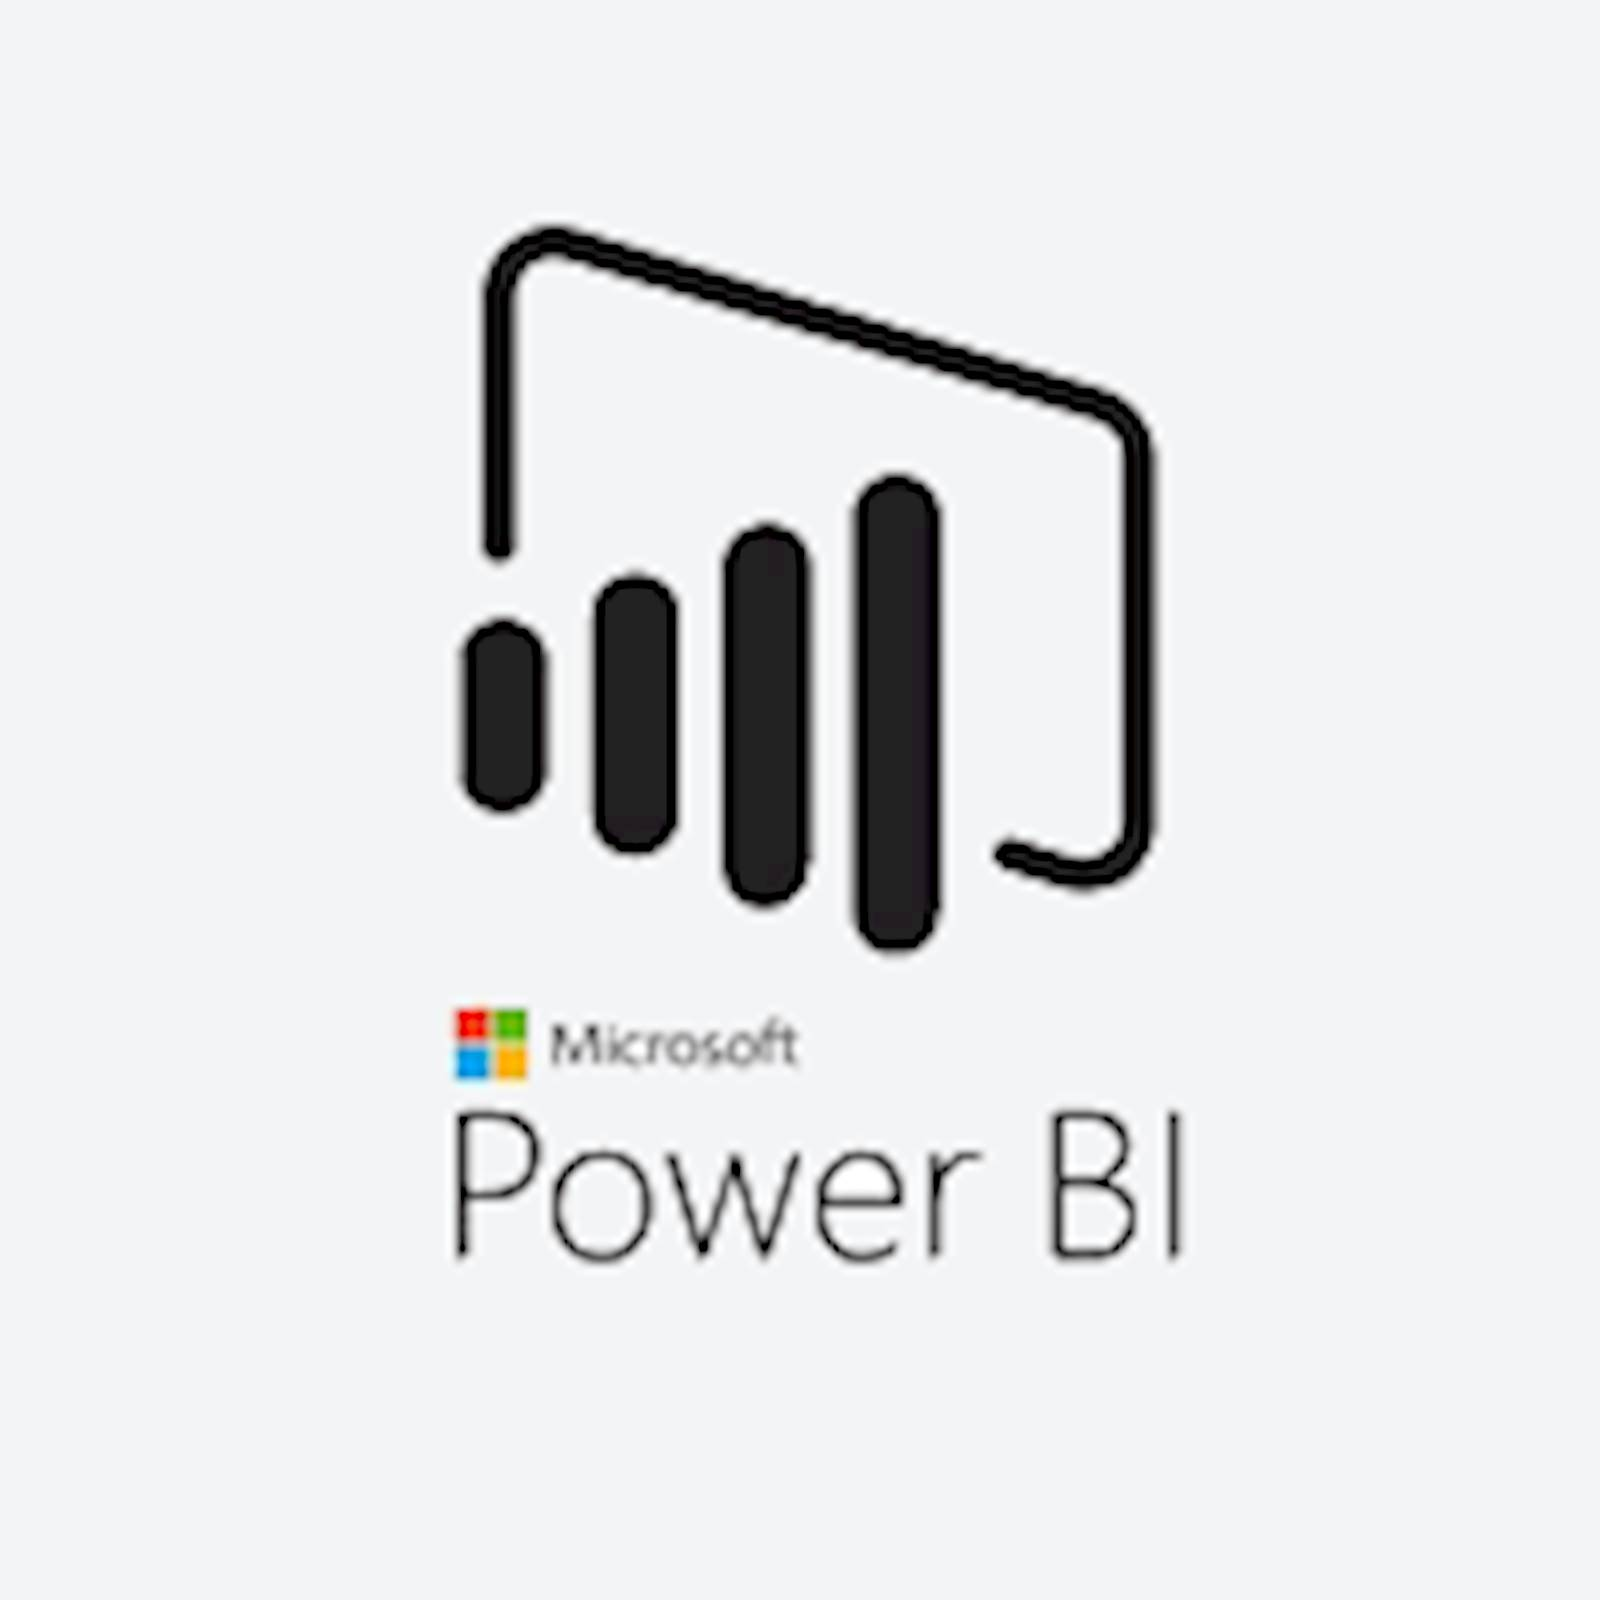 Read more about Business Analytics ith Microsoft Power BI